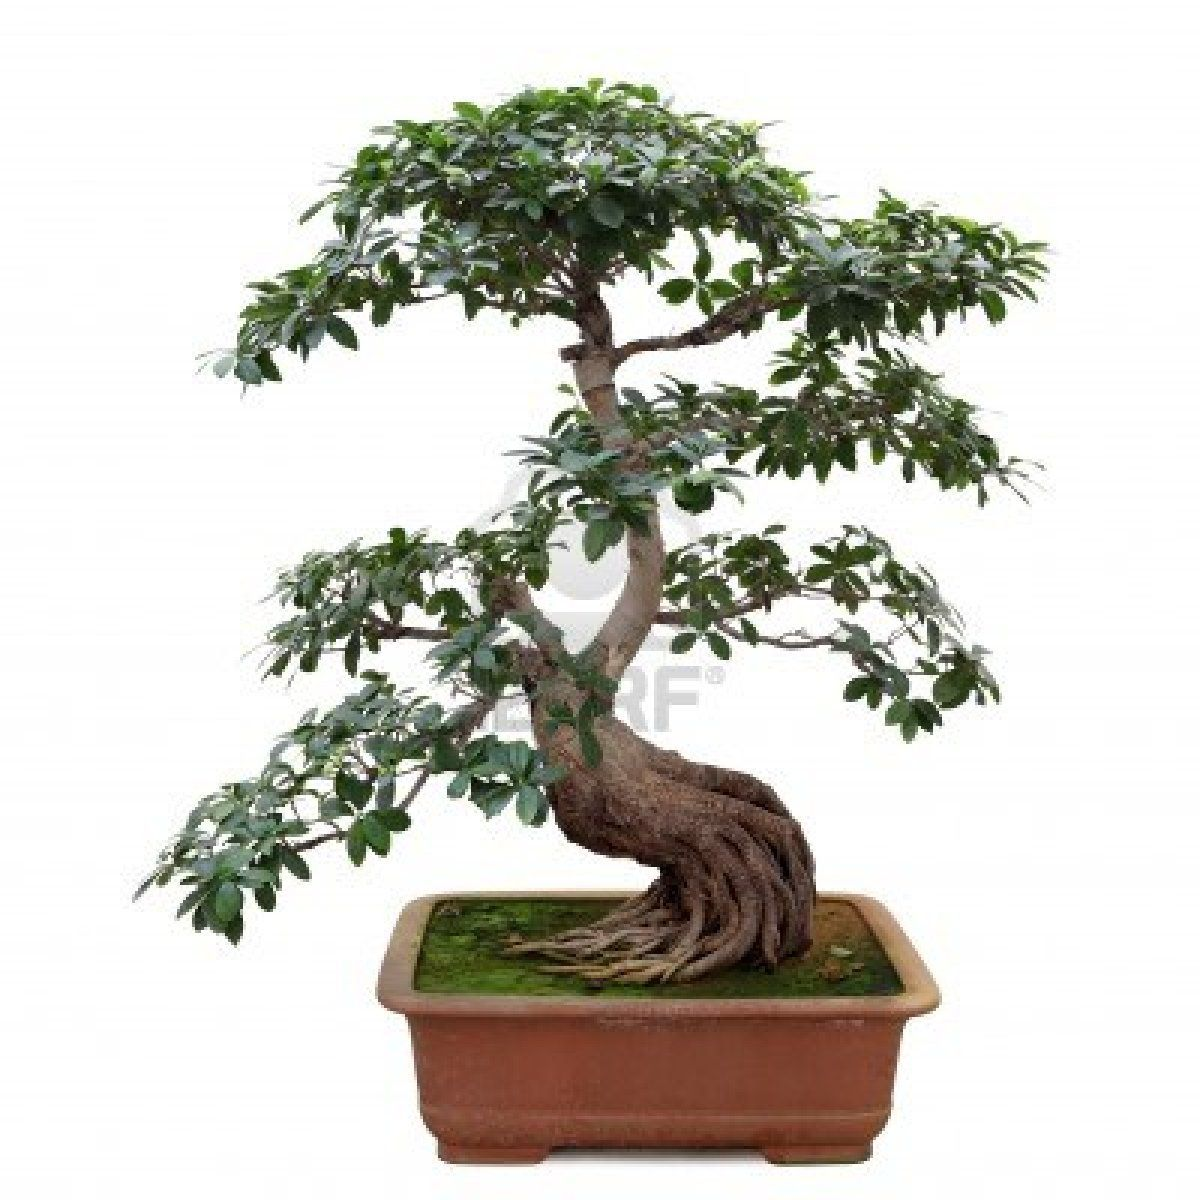 Stock Photo Pohon Bonsai Bonsai Pohon